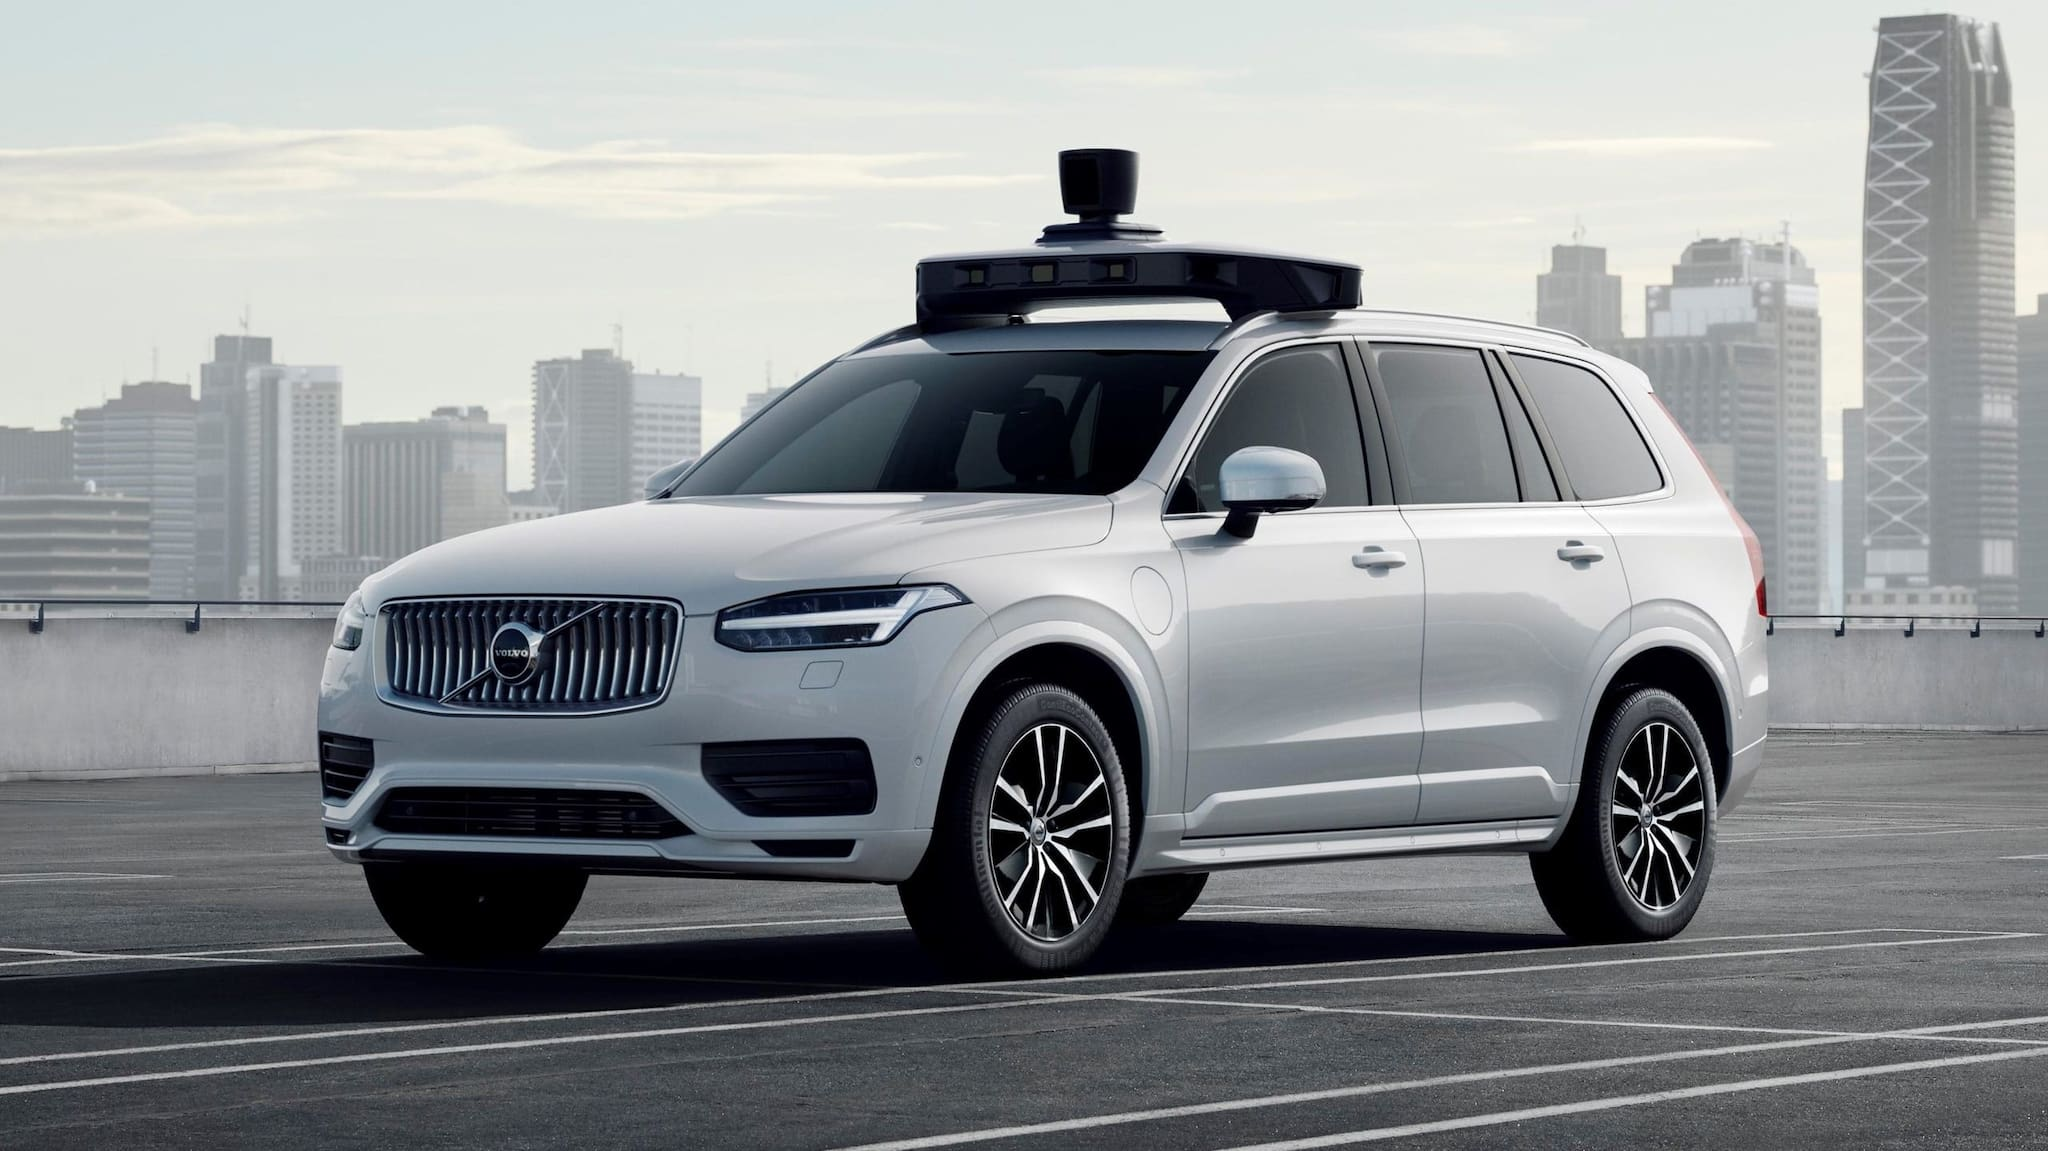 Volvo Cars, Uber Present Production Vehicle Ready for Self-Driving